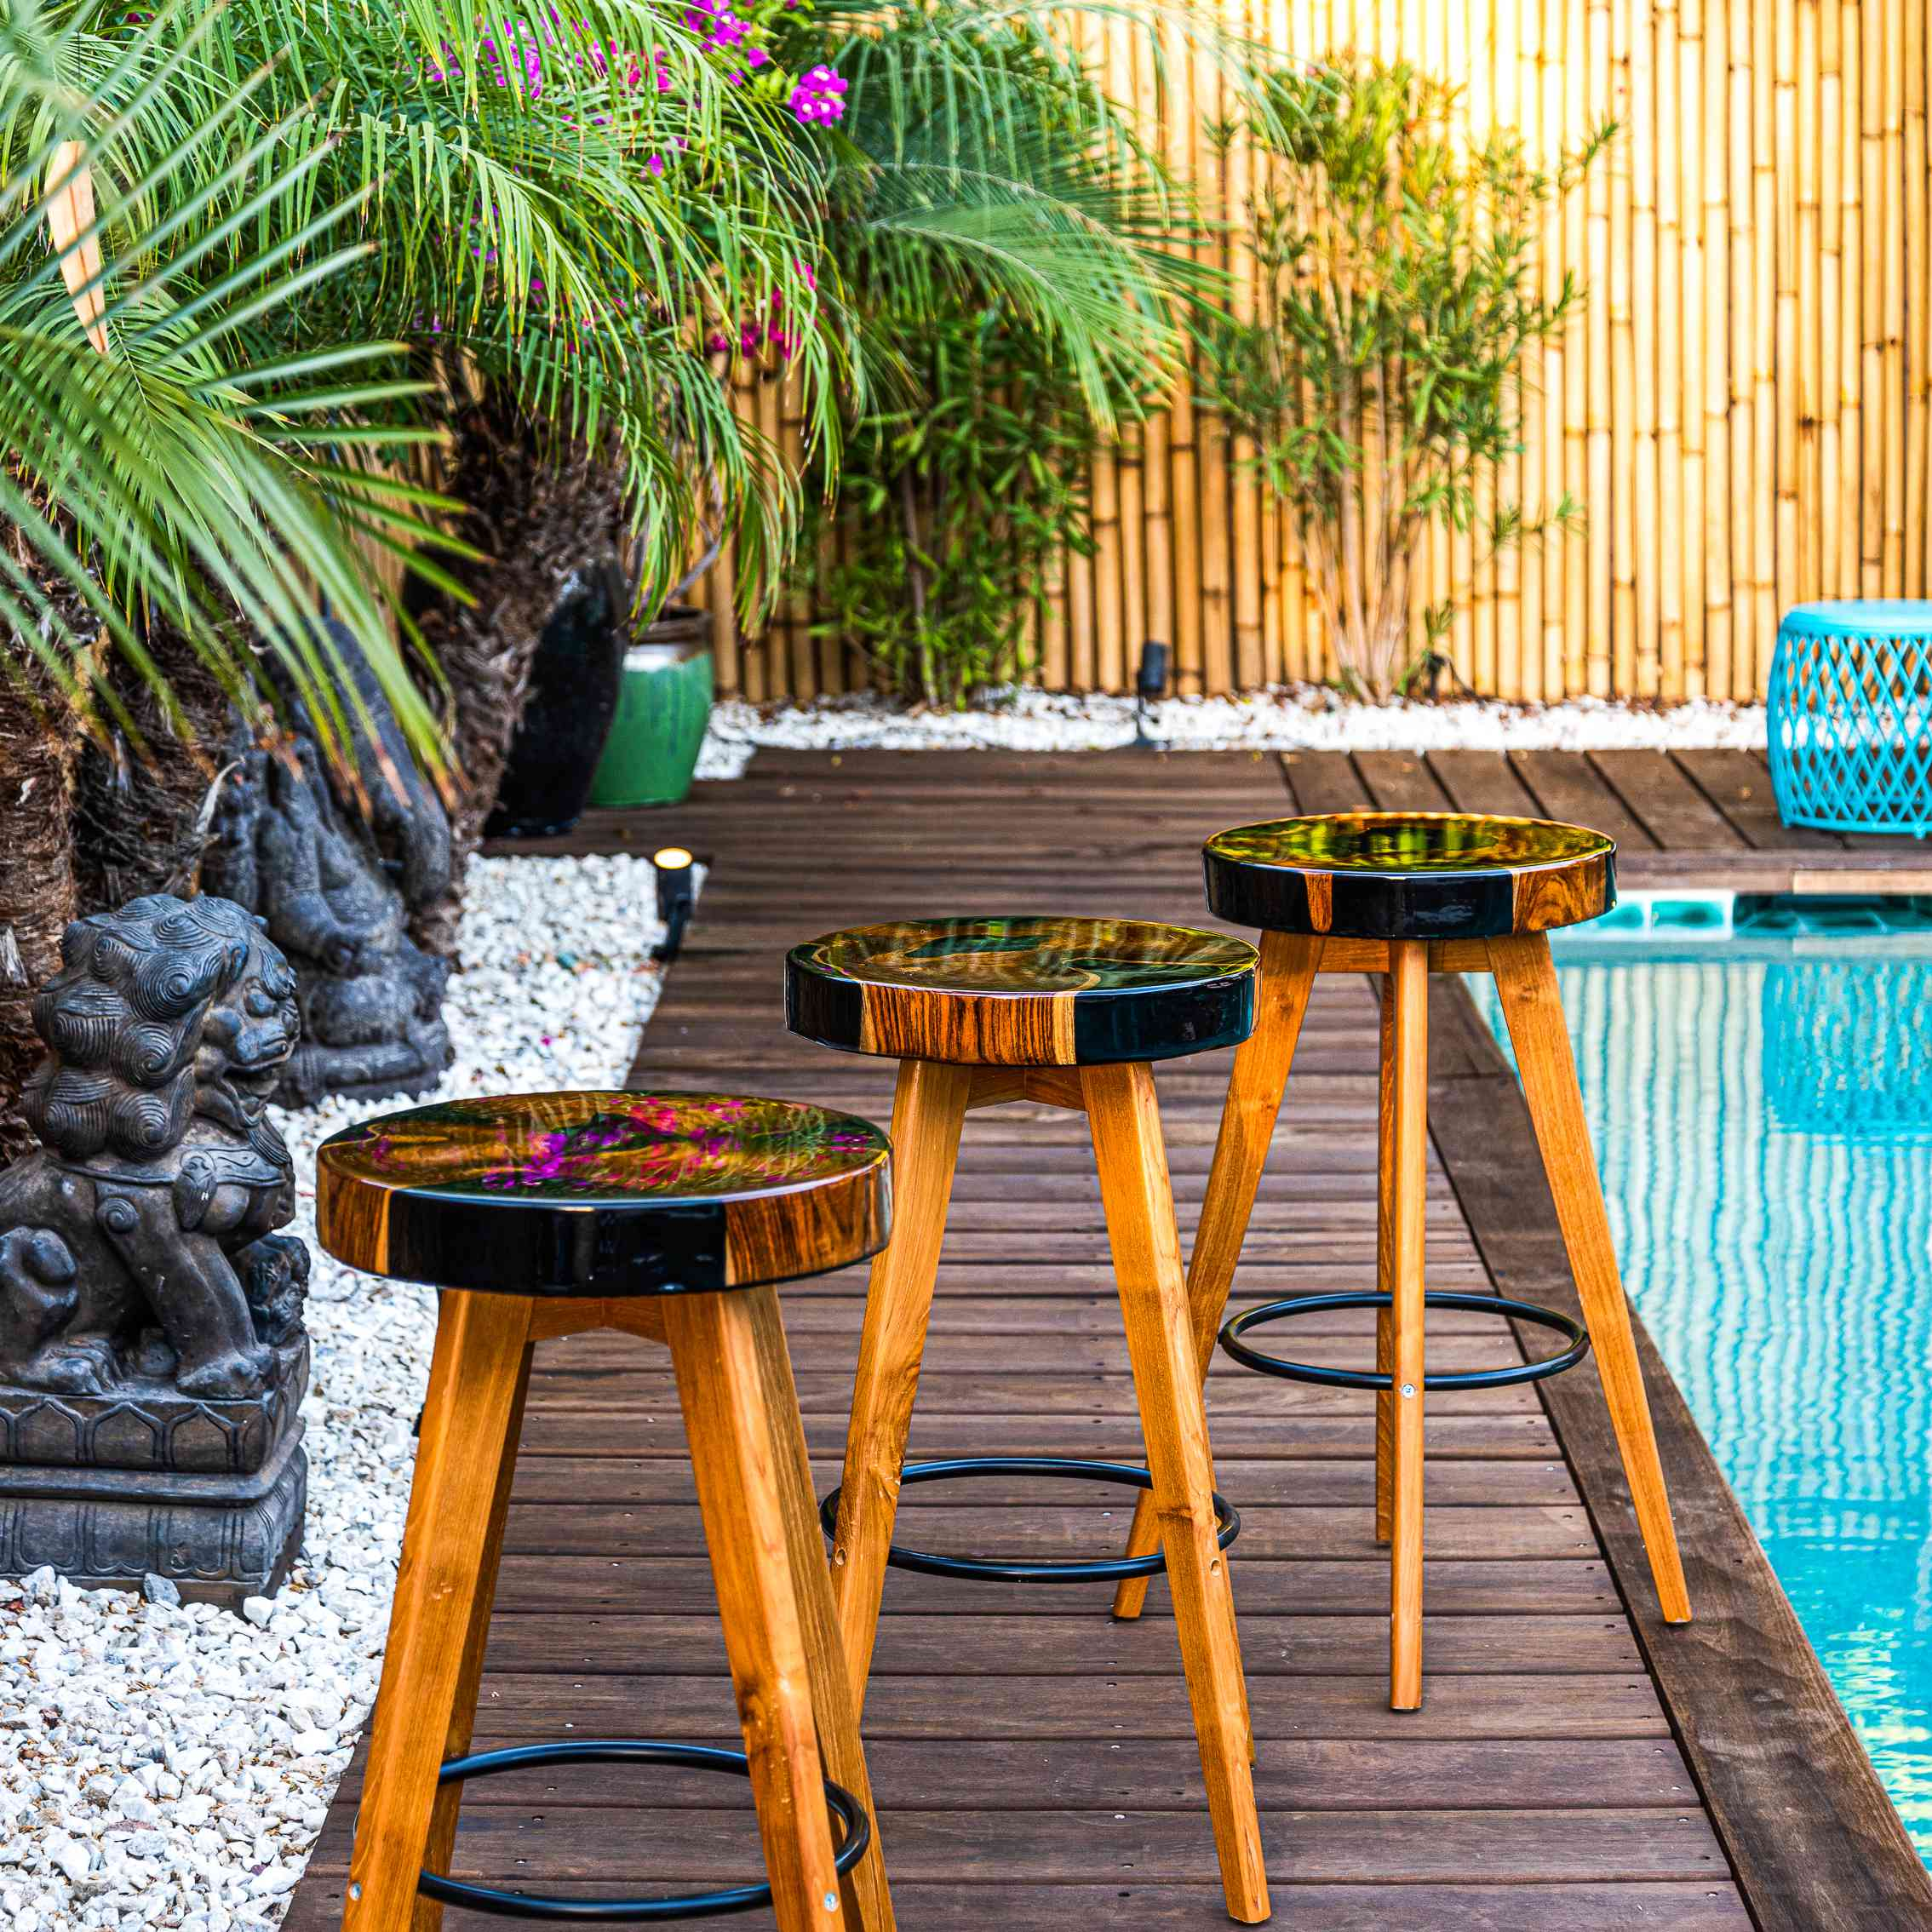 3 hand-designed stools at a pool side